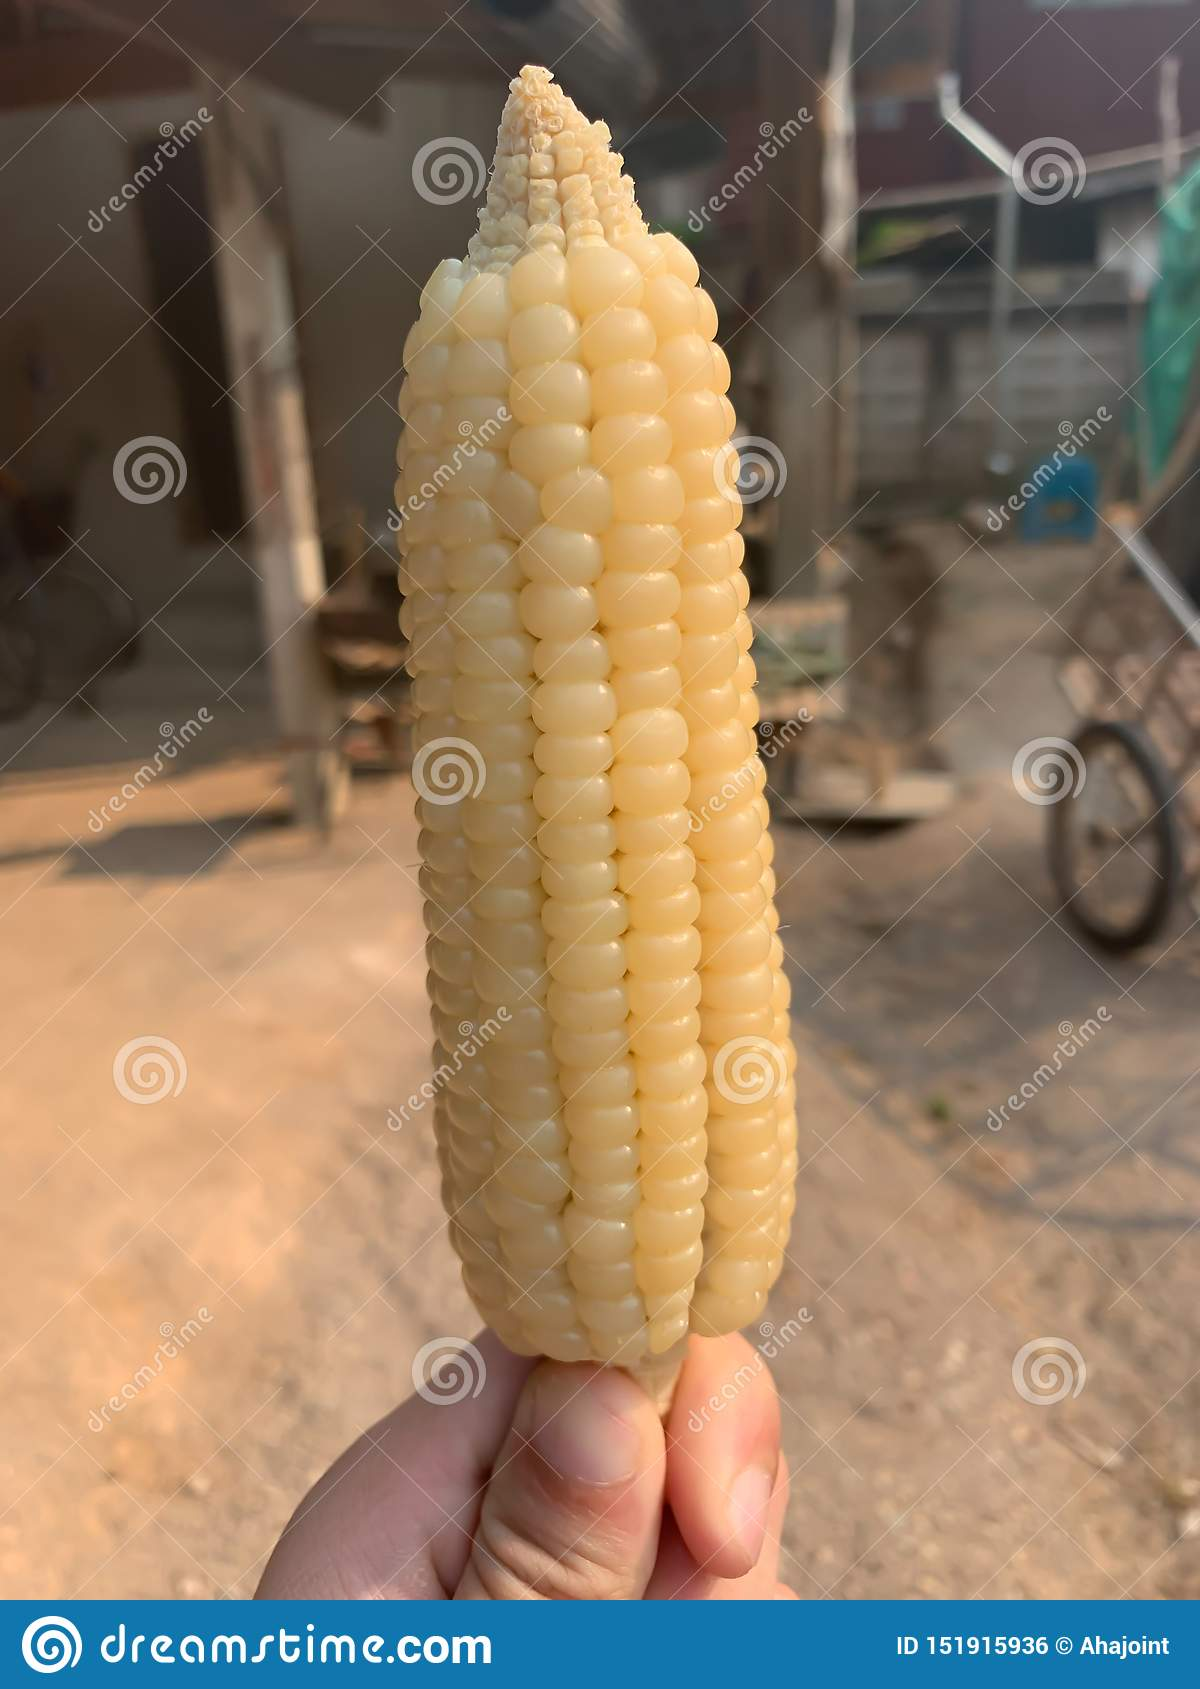 A yellow sweet corn for background